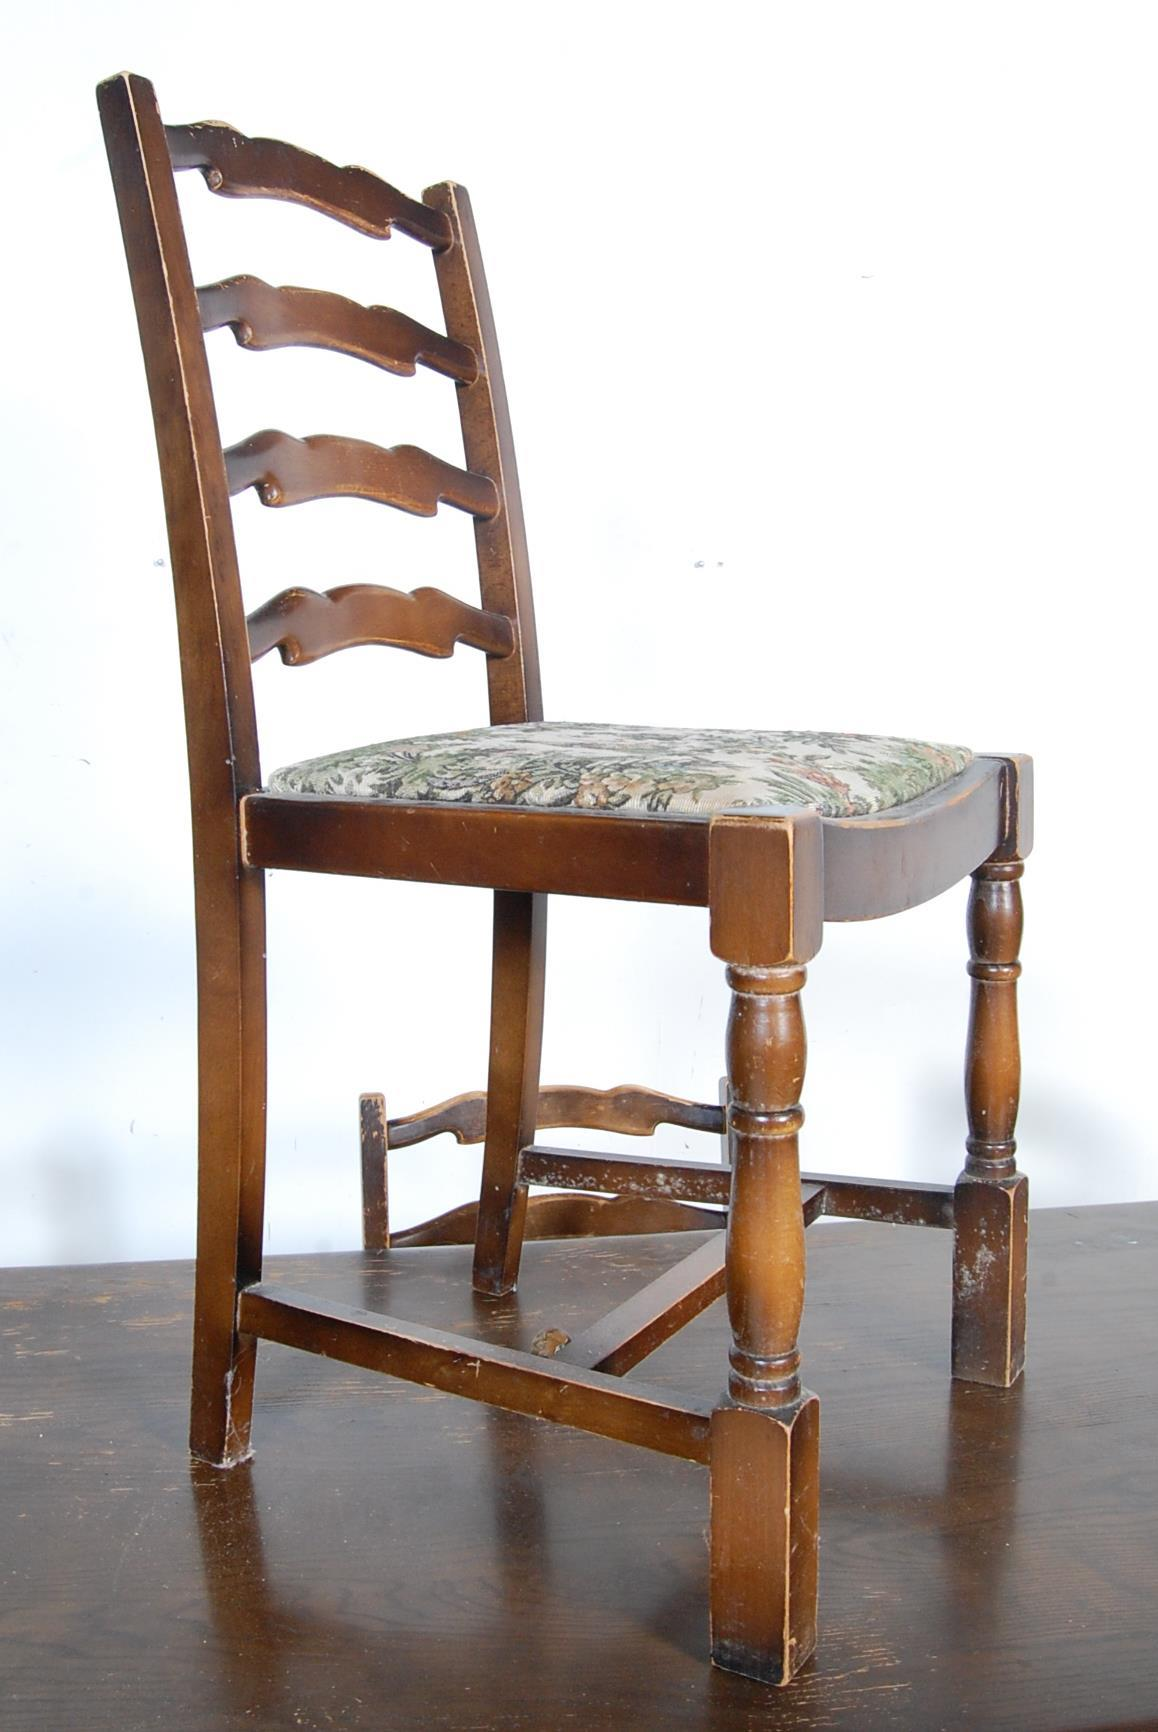 RETRO VINTAGE LATE 20TH CENTURY ERCOL STYLE DINING TABLE AND CHAIRS - Image 2 of 8